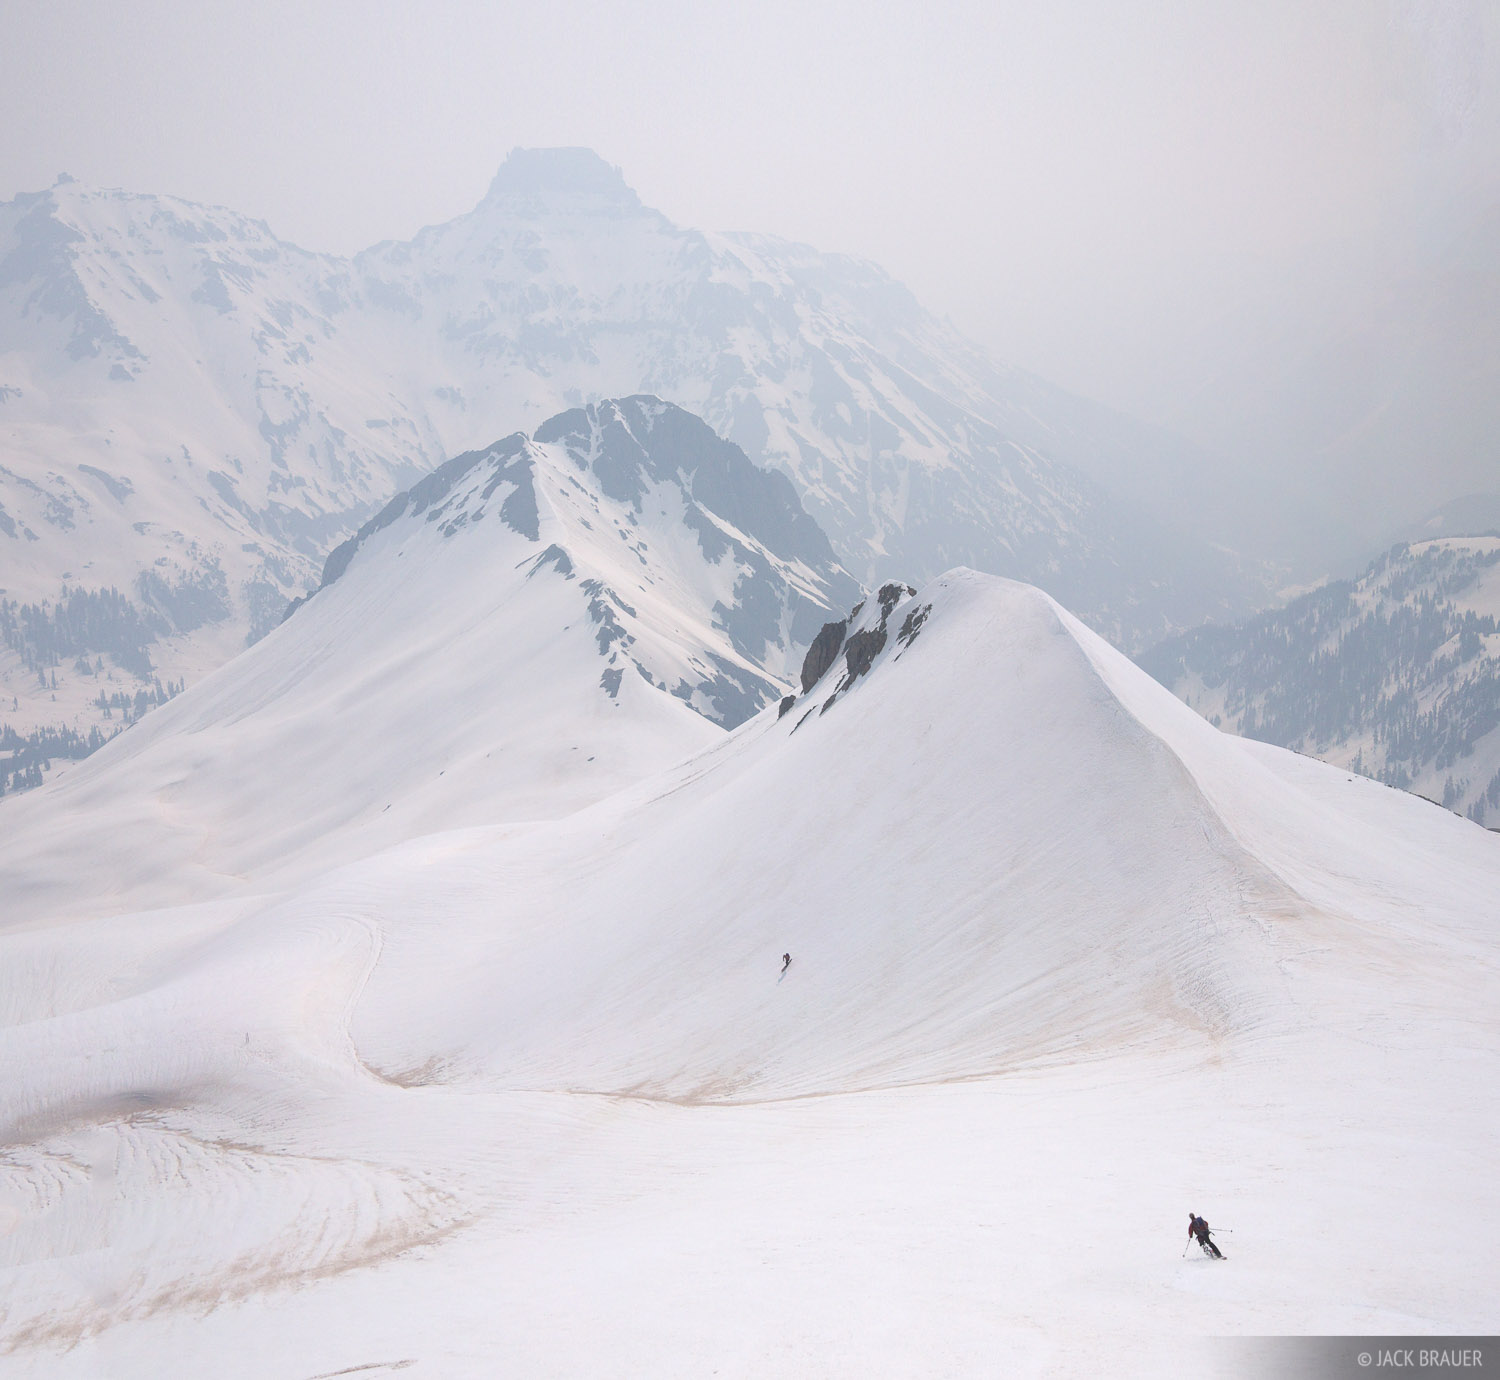 Skiing in June, with the San Juans choked with smoke from a huge wildfire in the White Mountains of eastern Arizona.